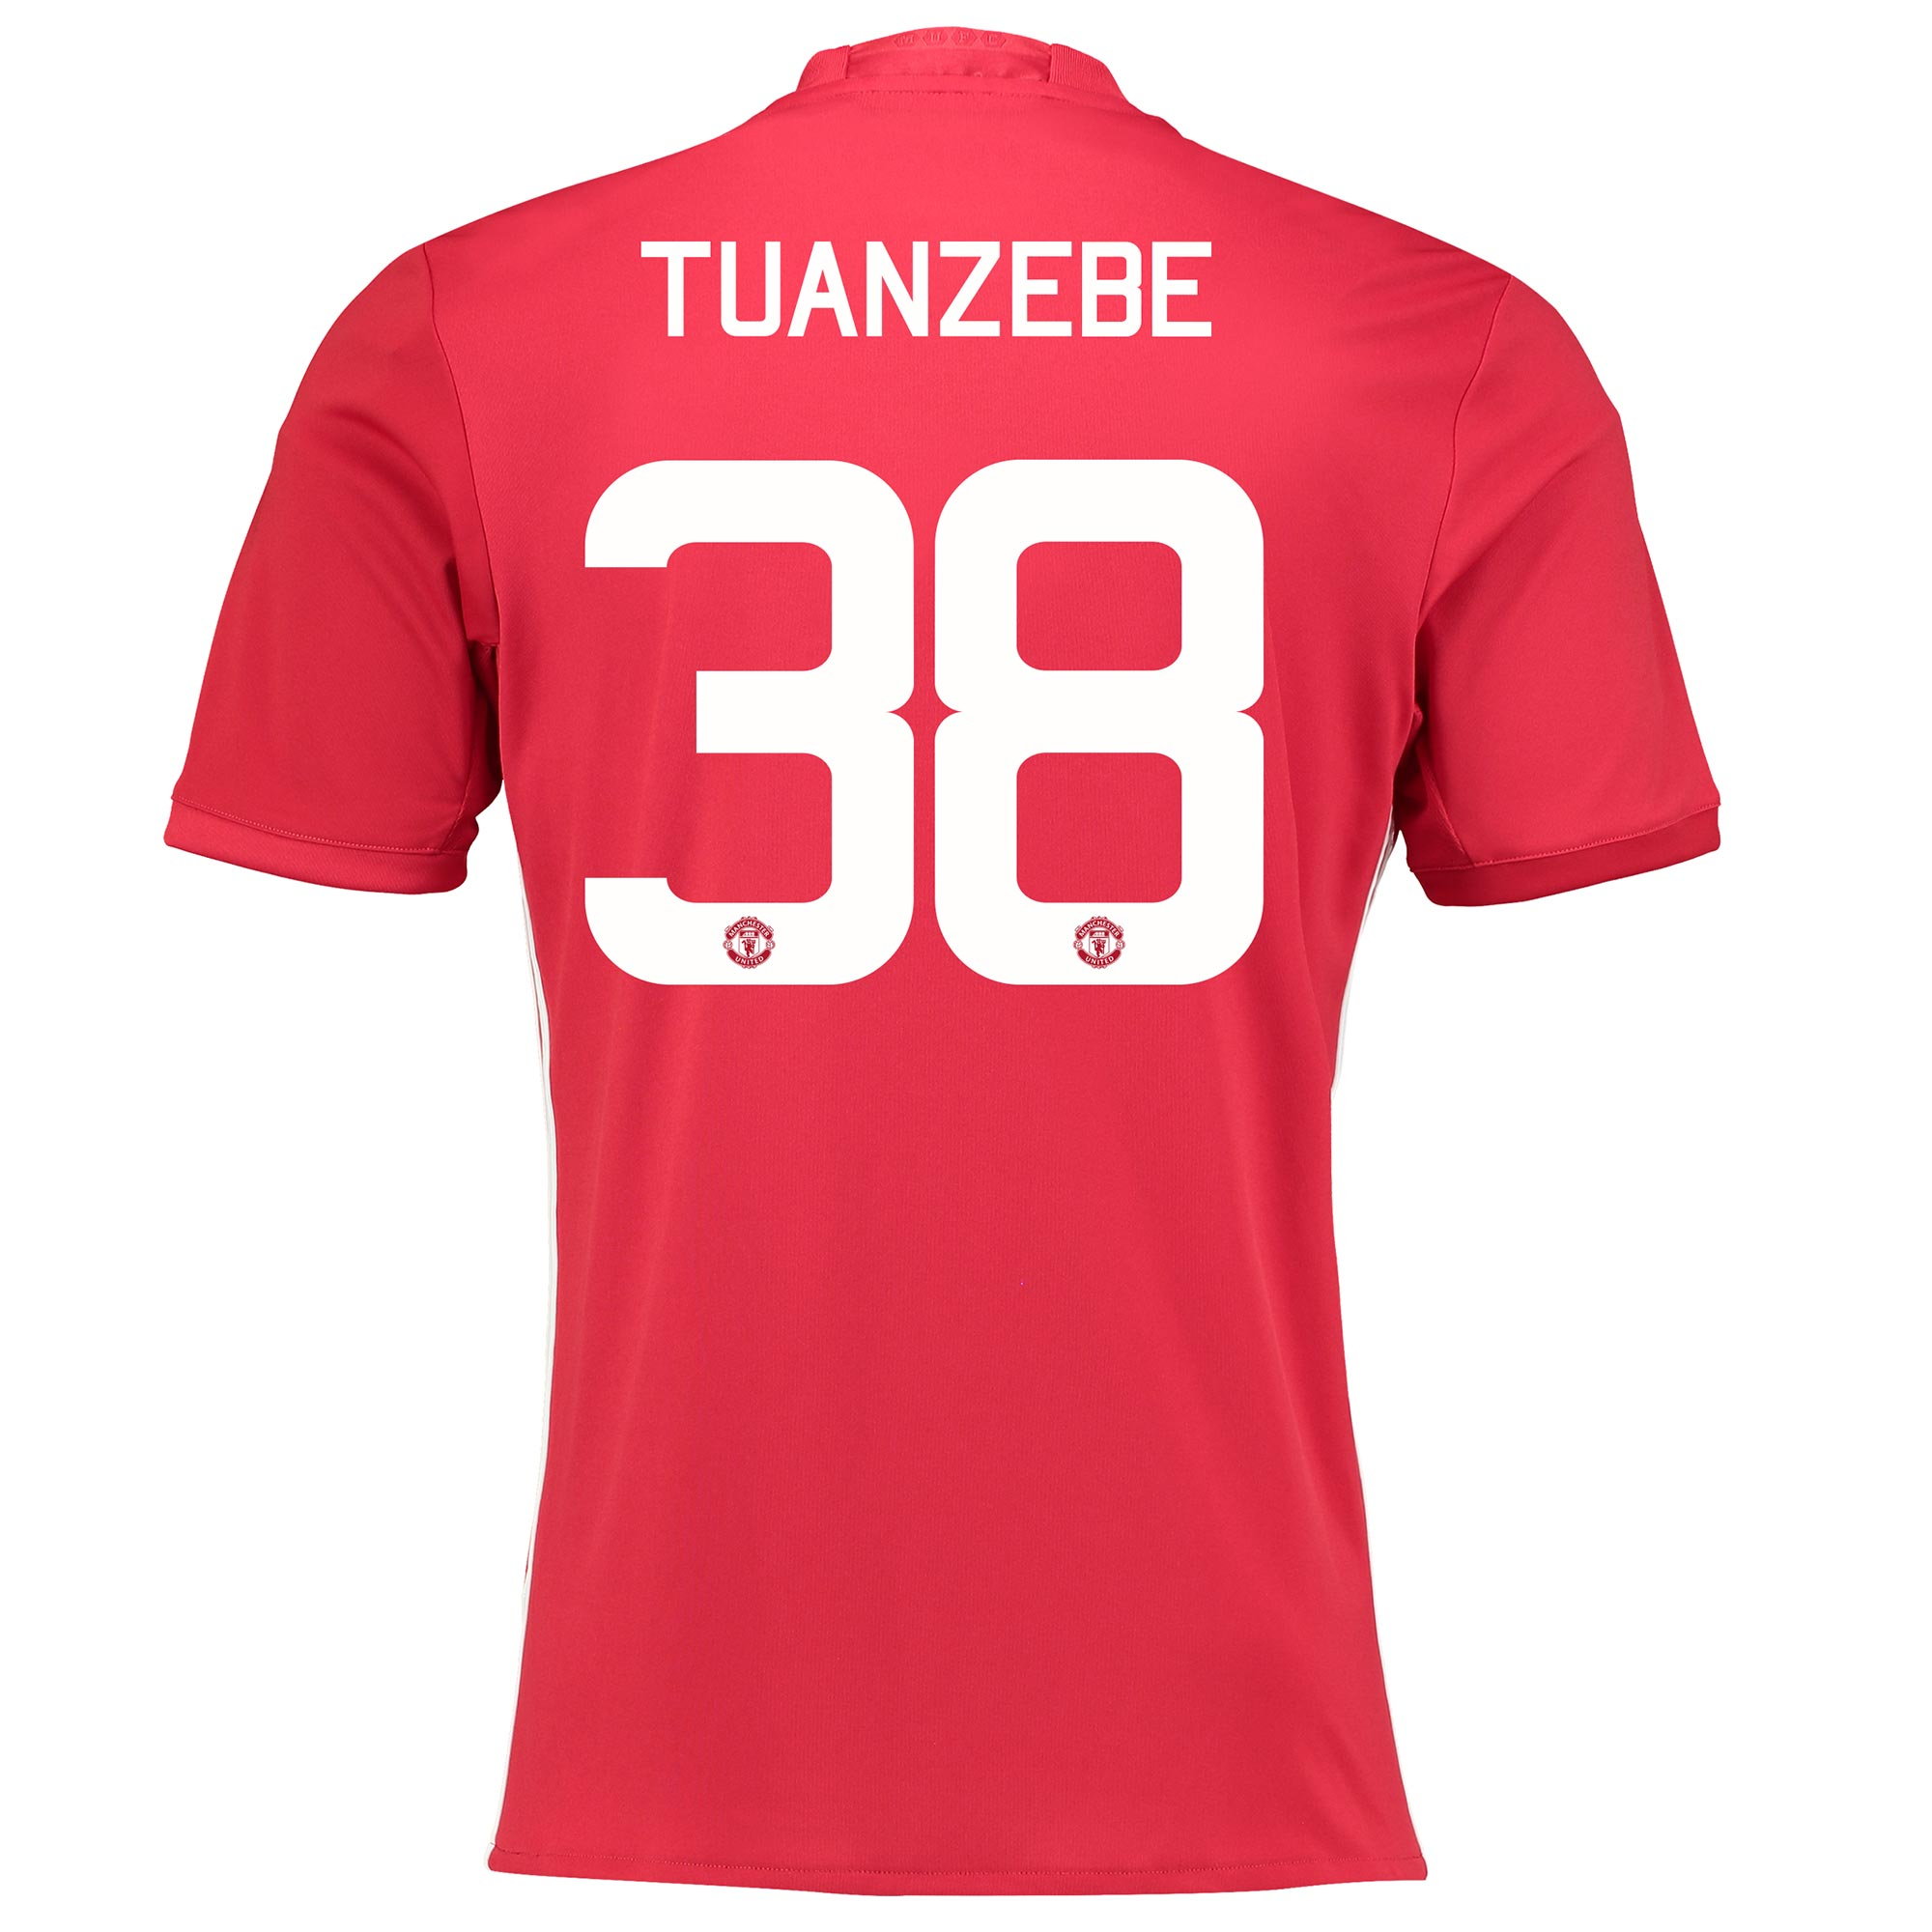 Manchester United Home Cup Shirt 2016-17 with Tuanzebe 38 printing